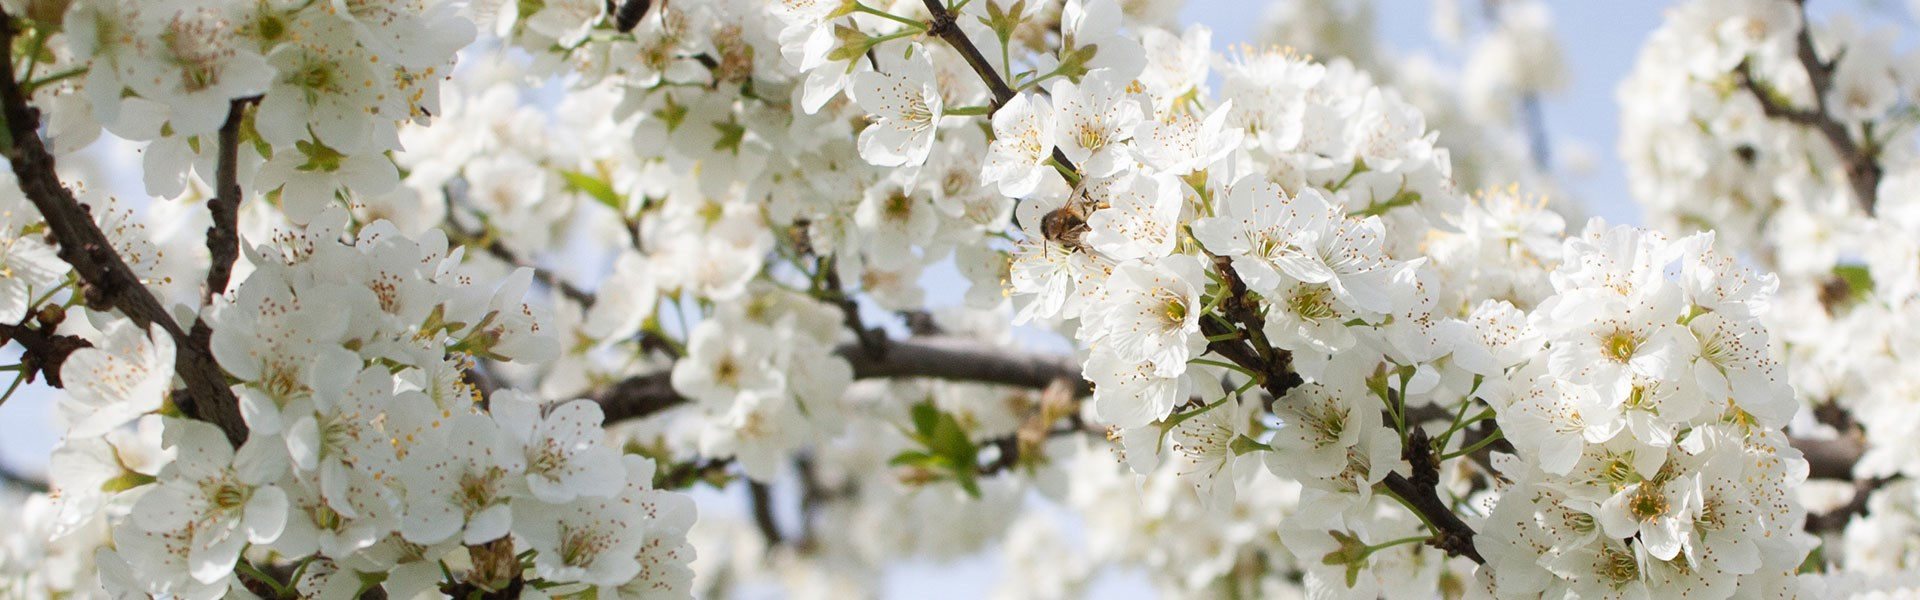 White blossom on a tree branch - wide